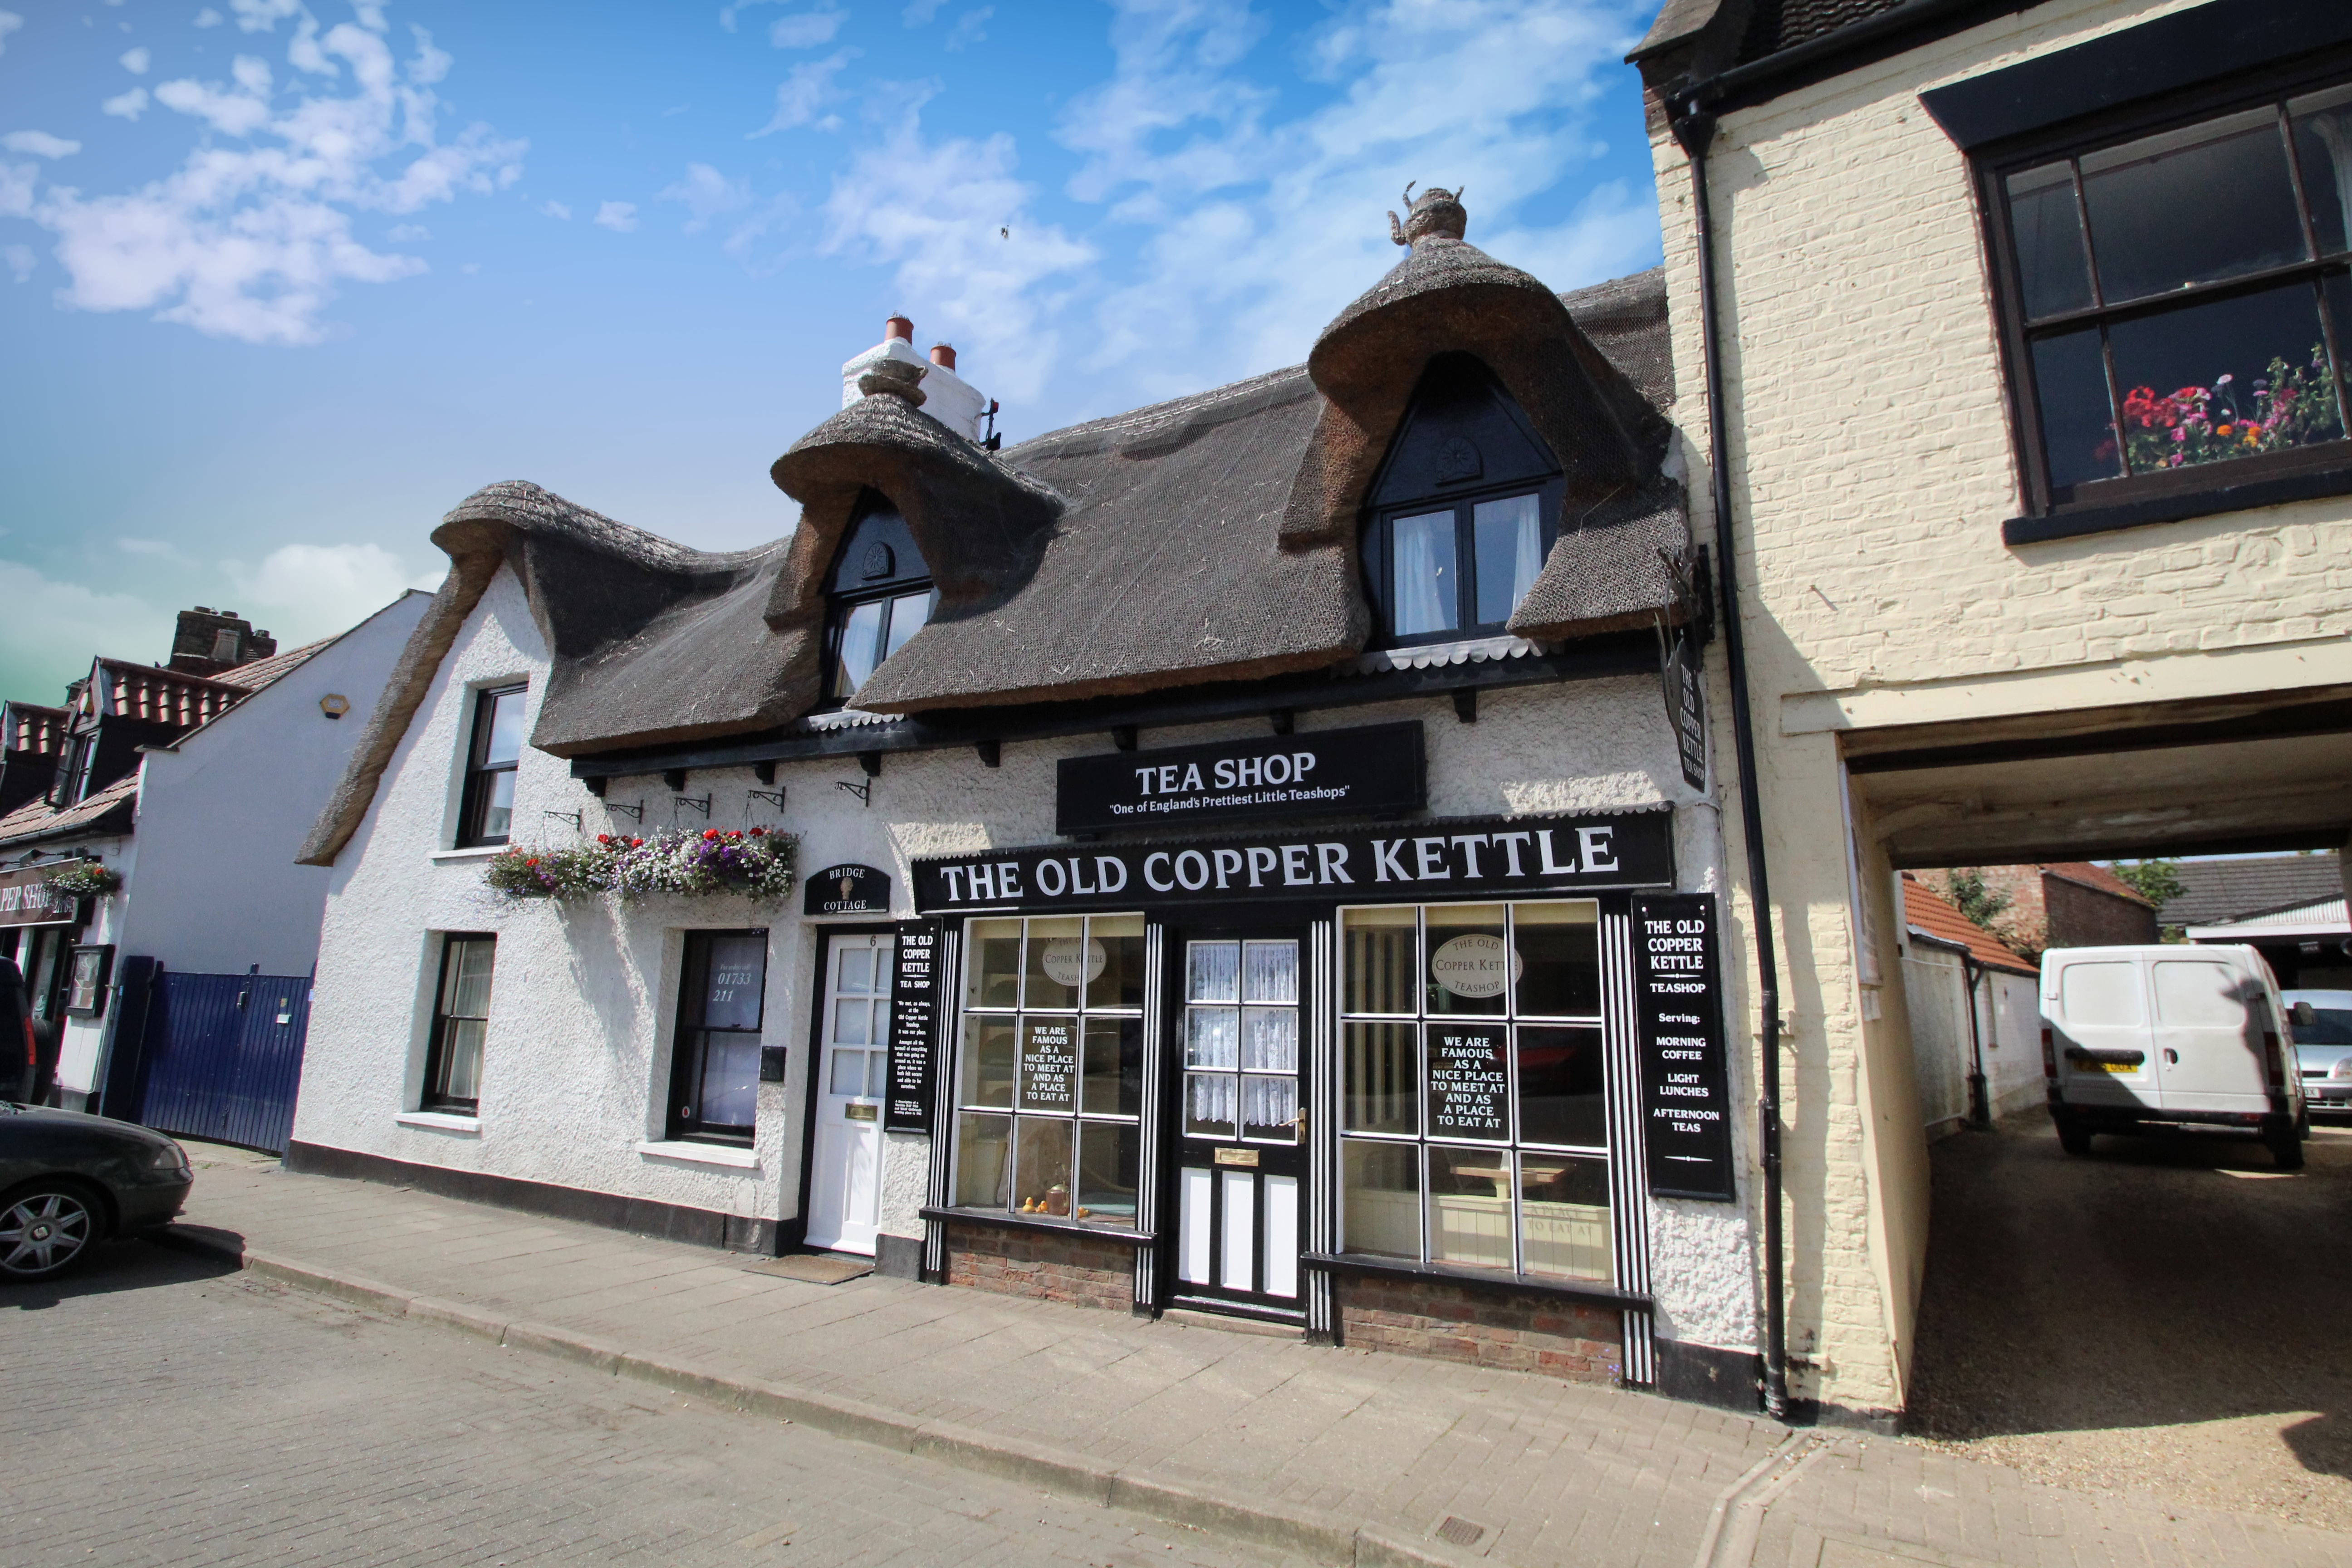 The Old Copper Kettle, Crowland, Peterborough  Lincolnshire, East Anglia